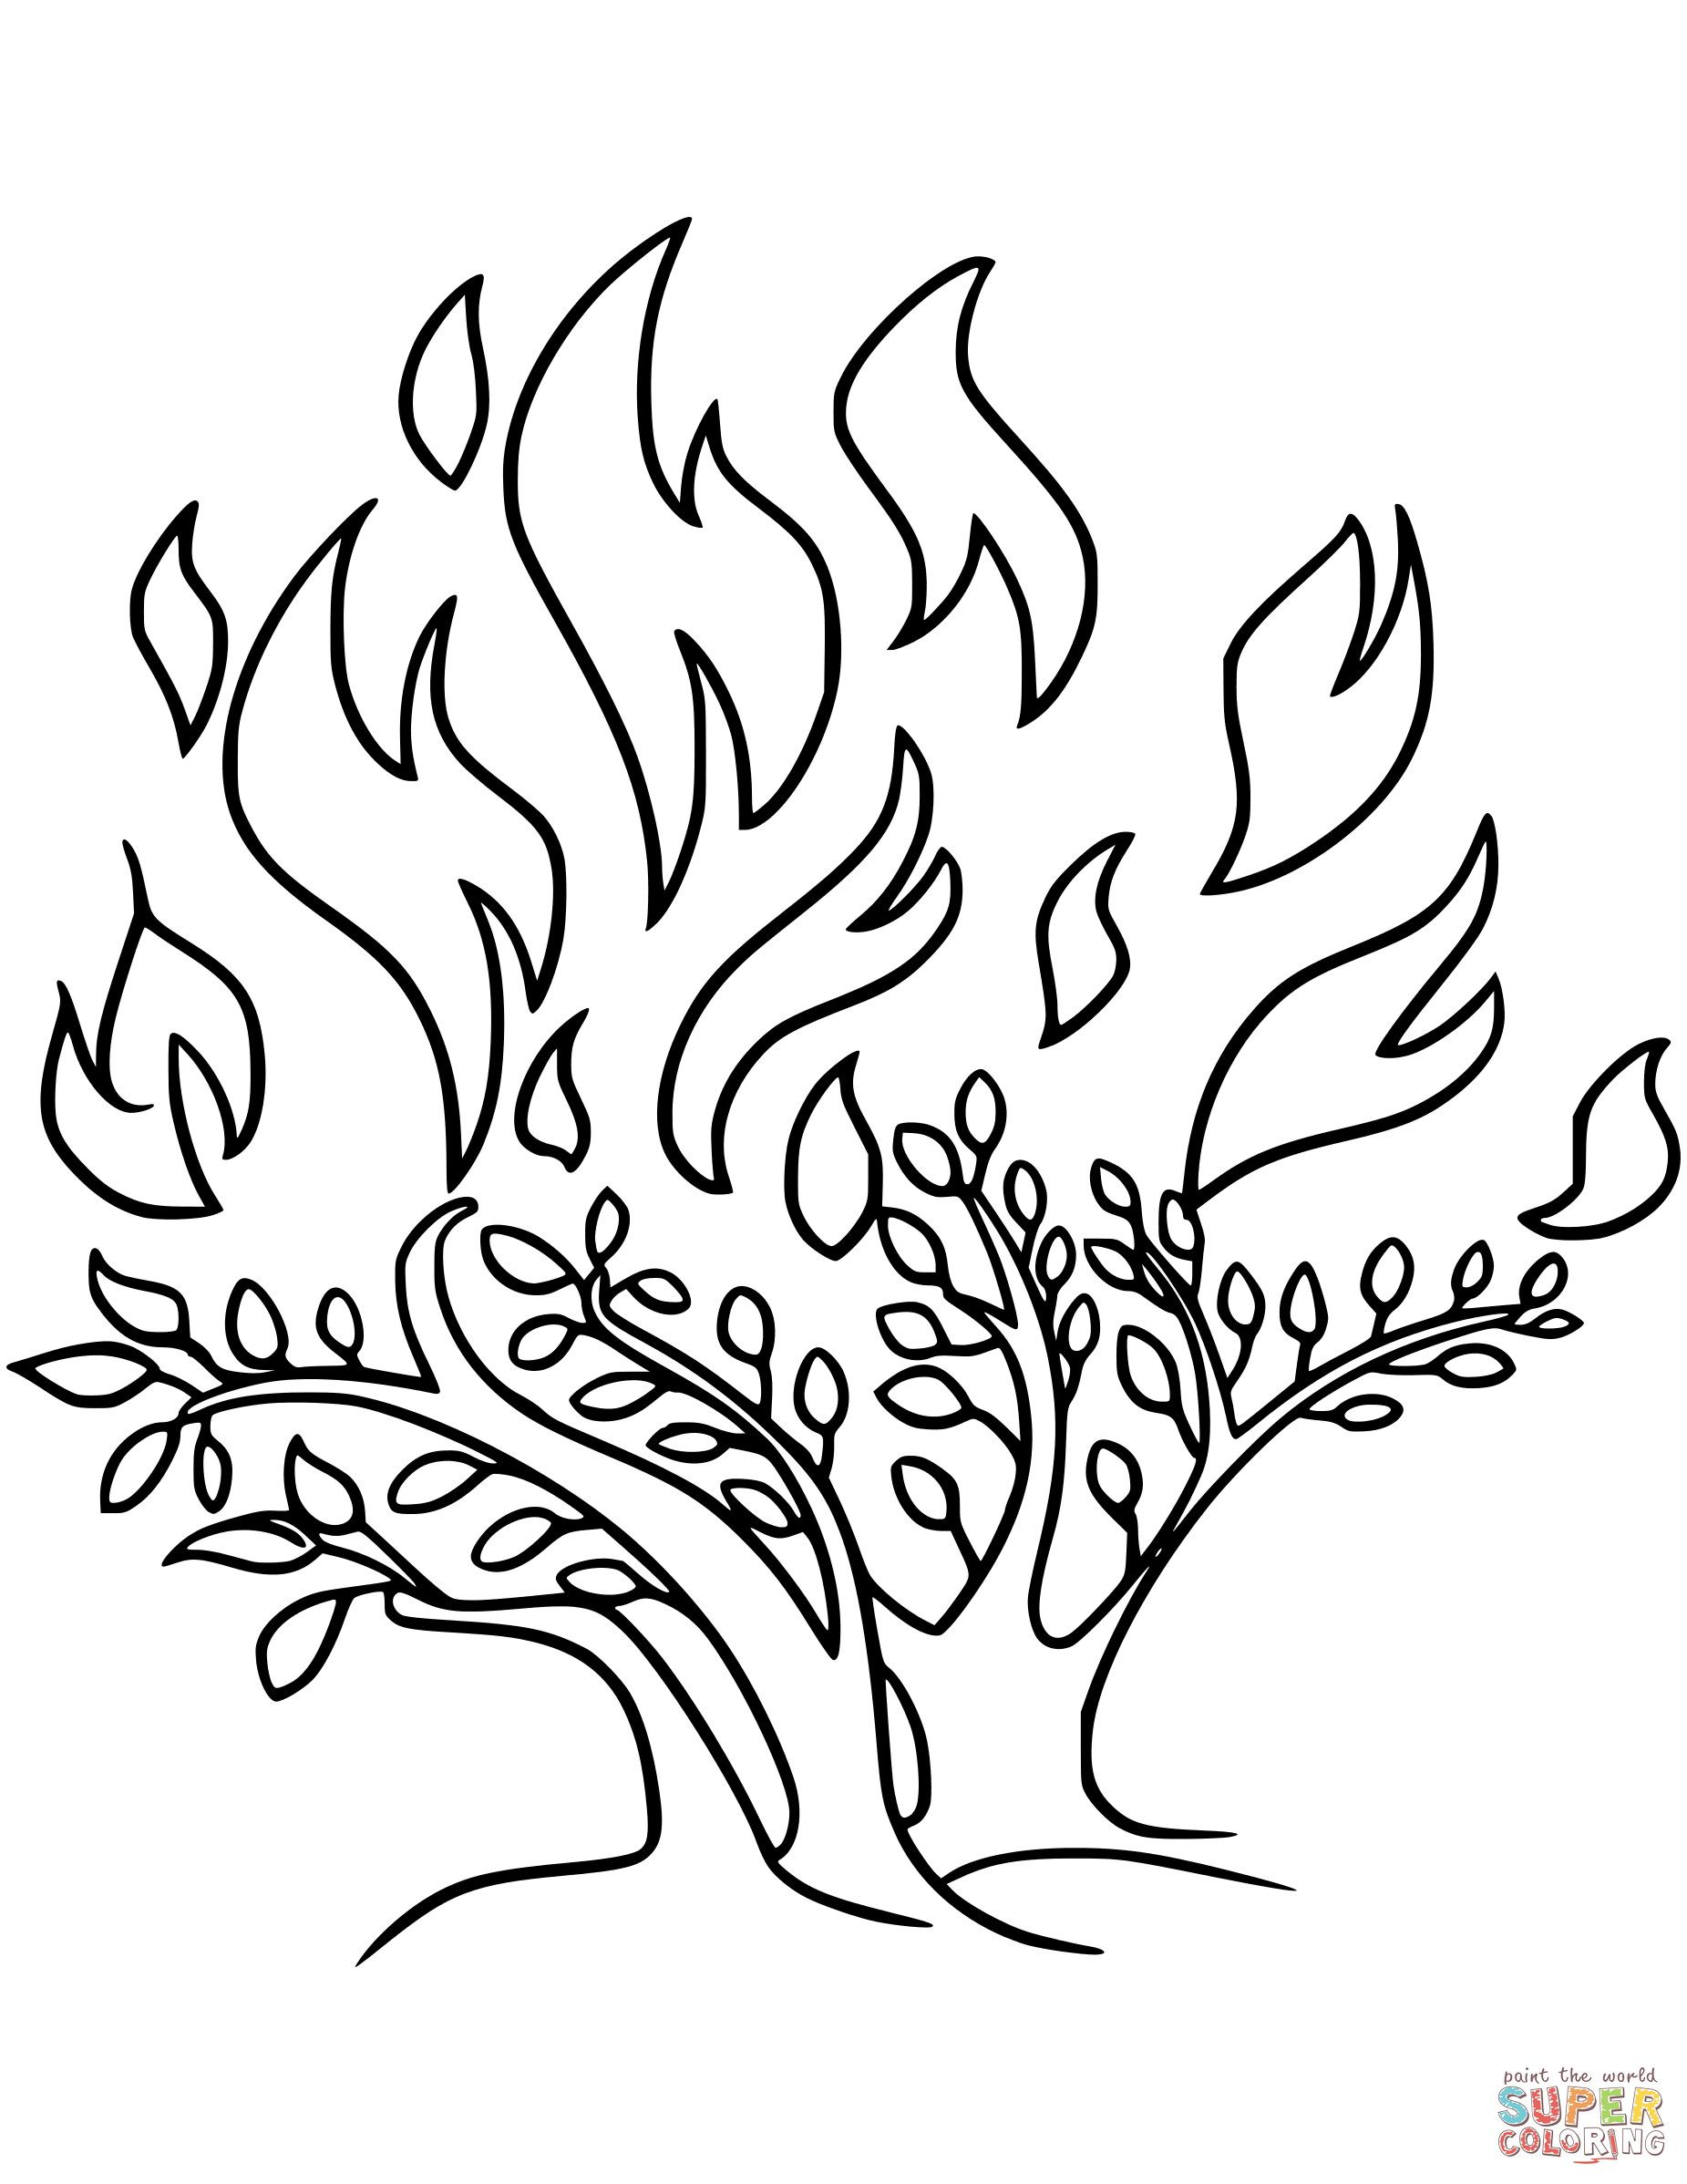 Moses And The Burning Bush Coloring Page New Moses Coloring Pages For Kids Burning Bush Craft Sunday School Coloring Pages Burning Bush